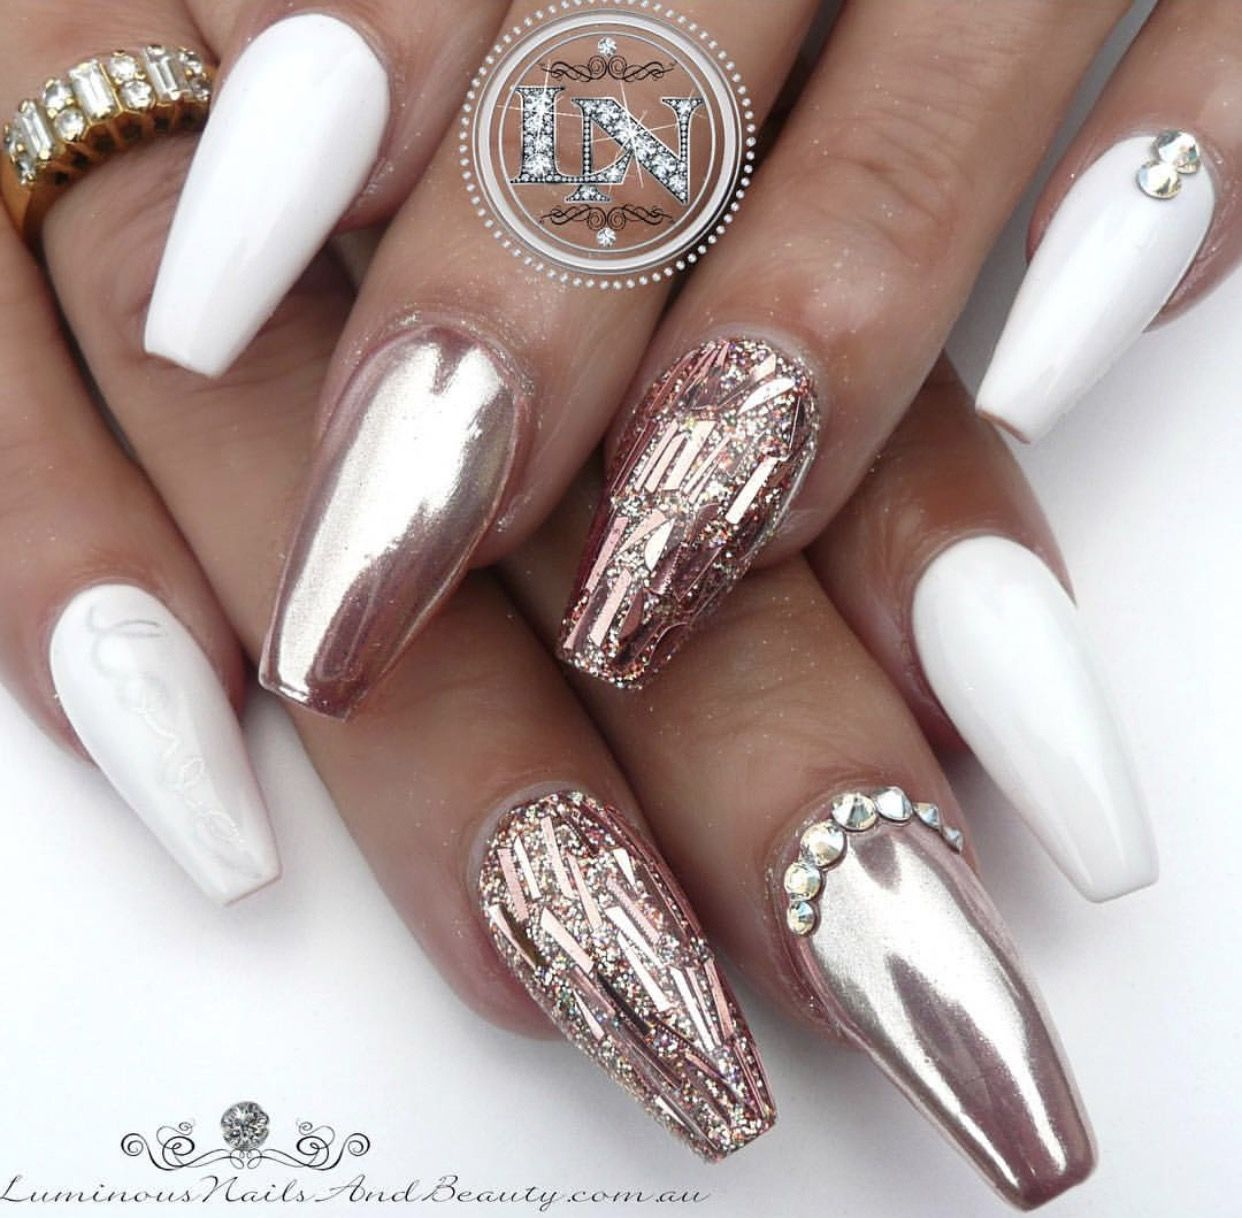 Pin de Yolanda Wells en Fake Nails ♡ (Acrylic/Gel) | Pinterest ...